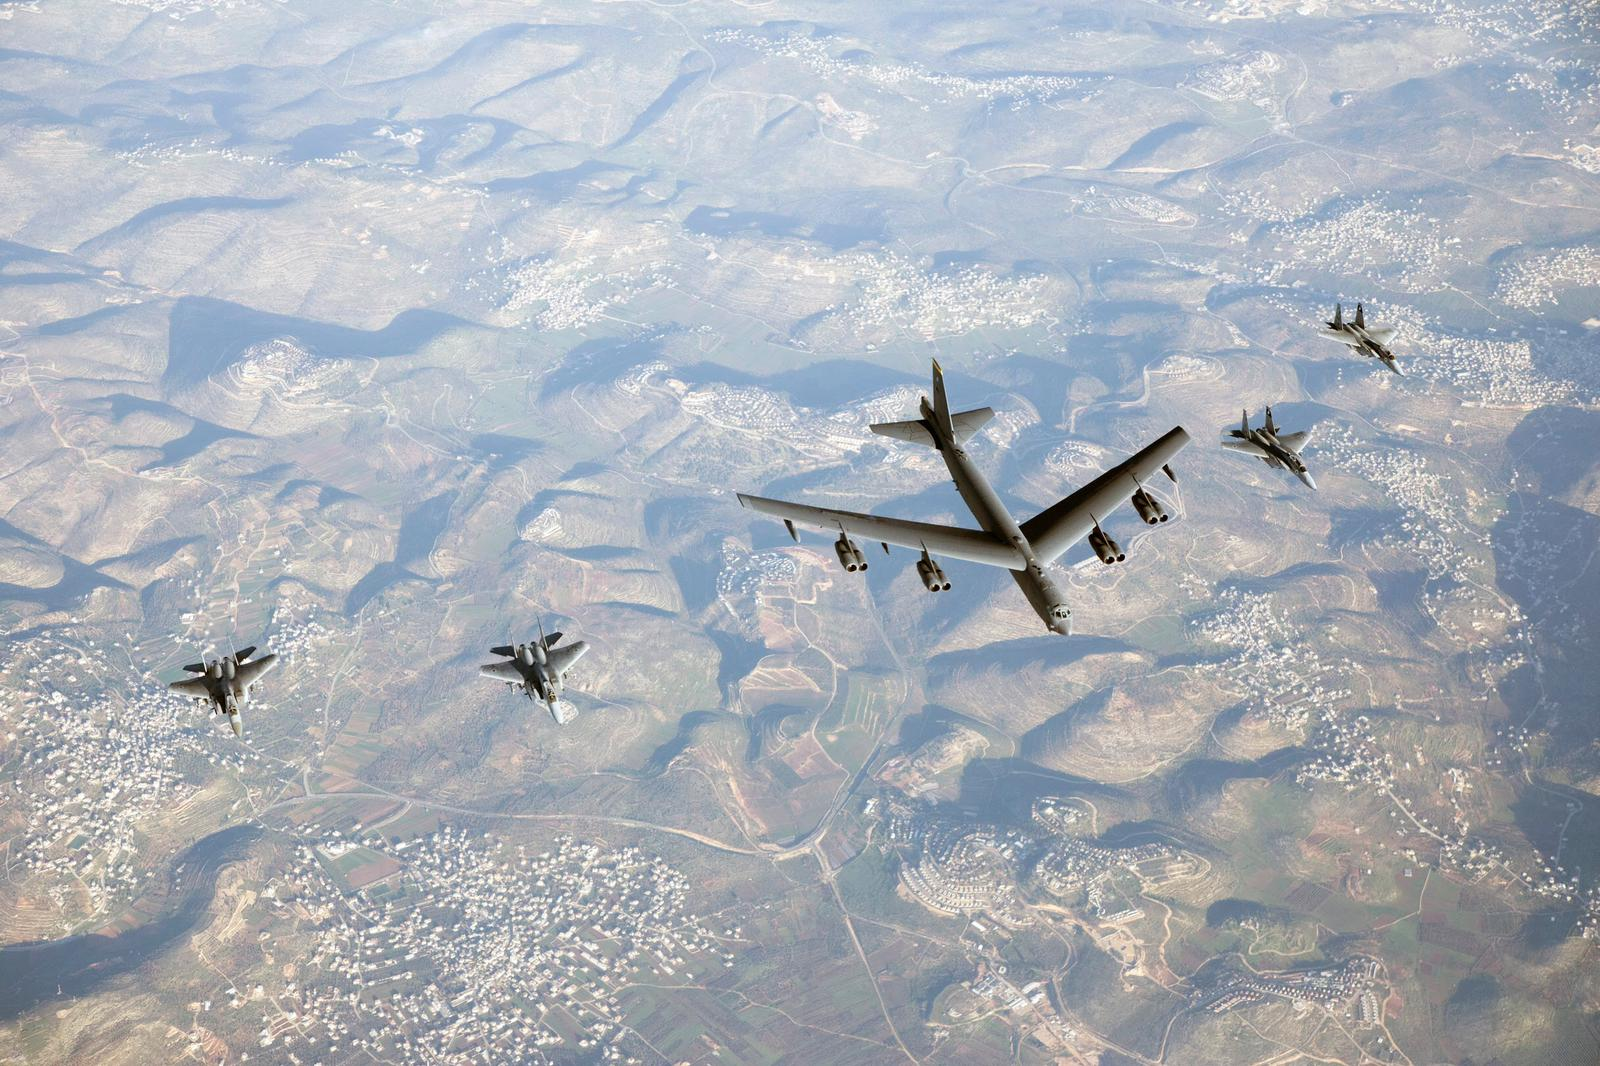 Israeli jets escort American B-52 during flyby, in show of force to Iran